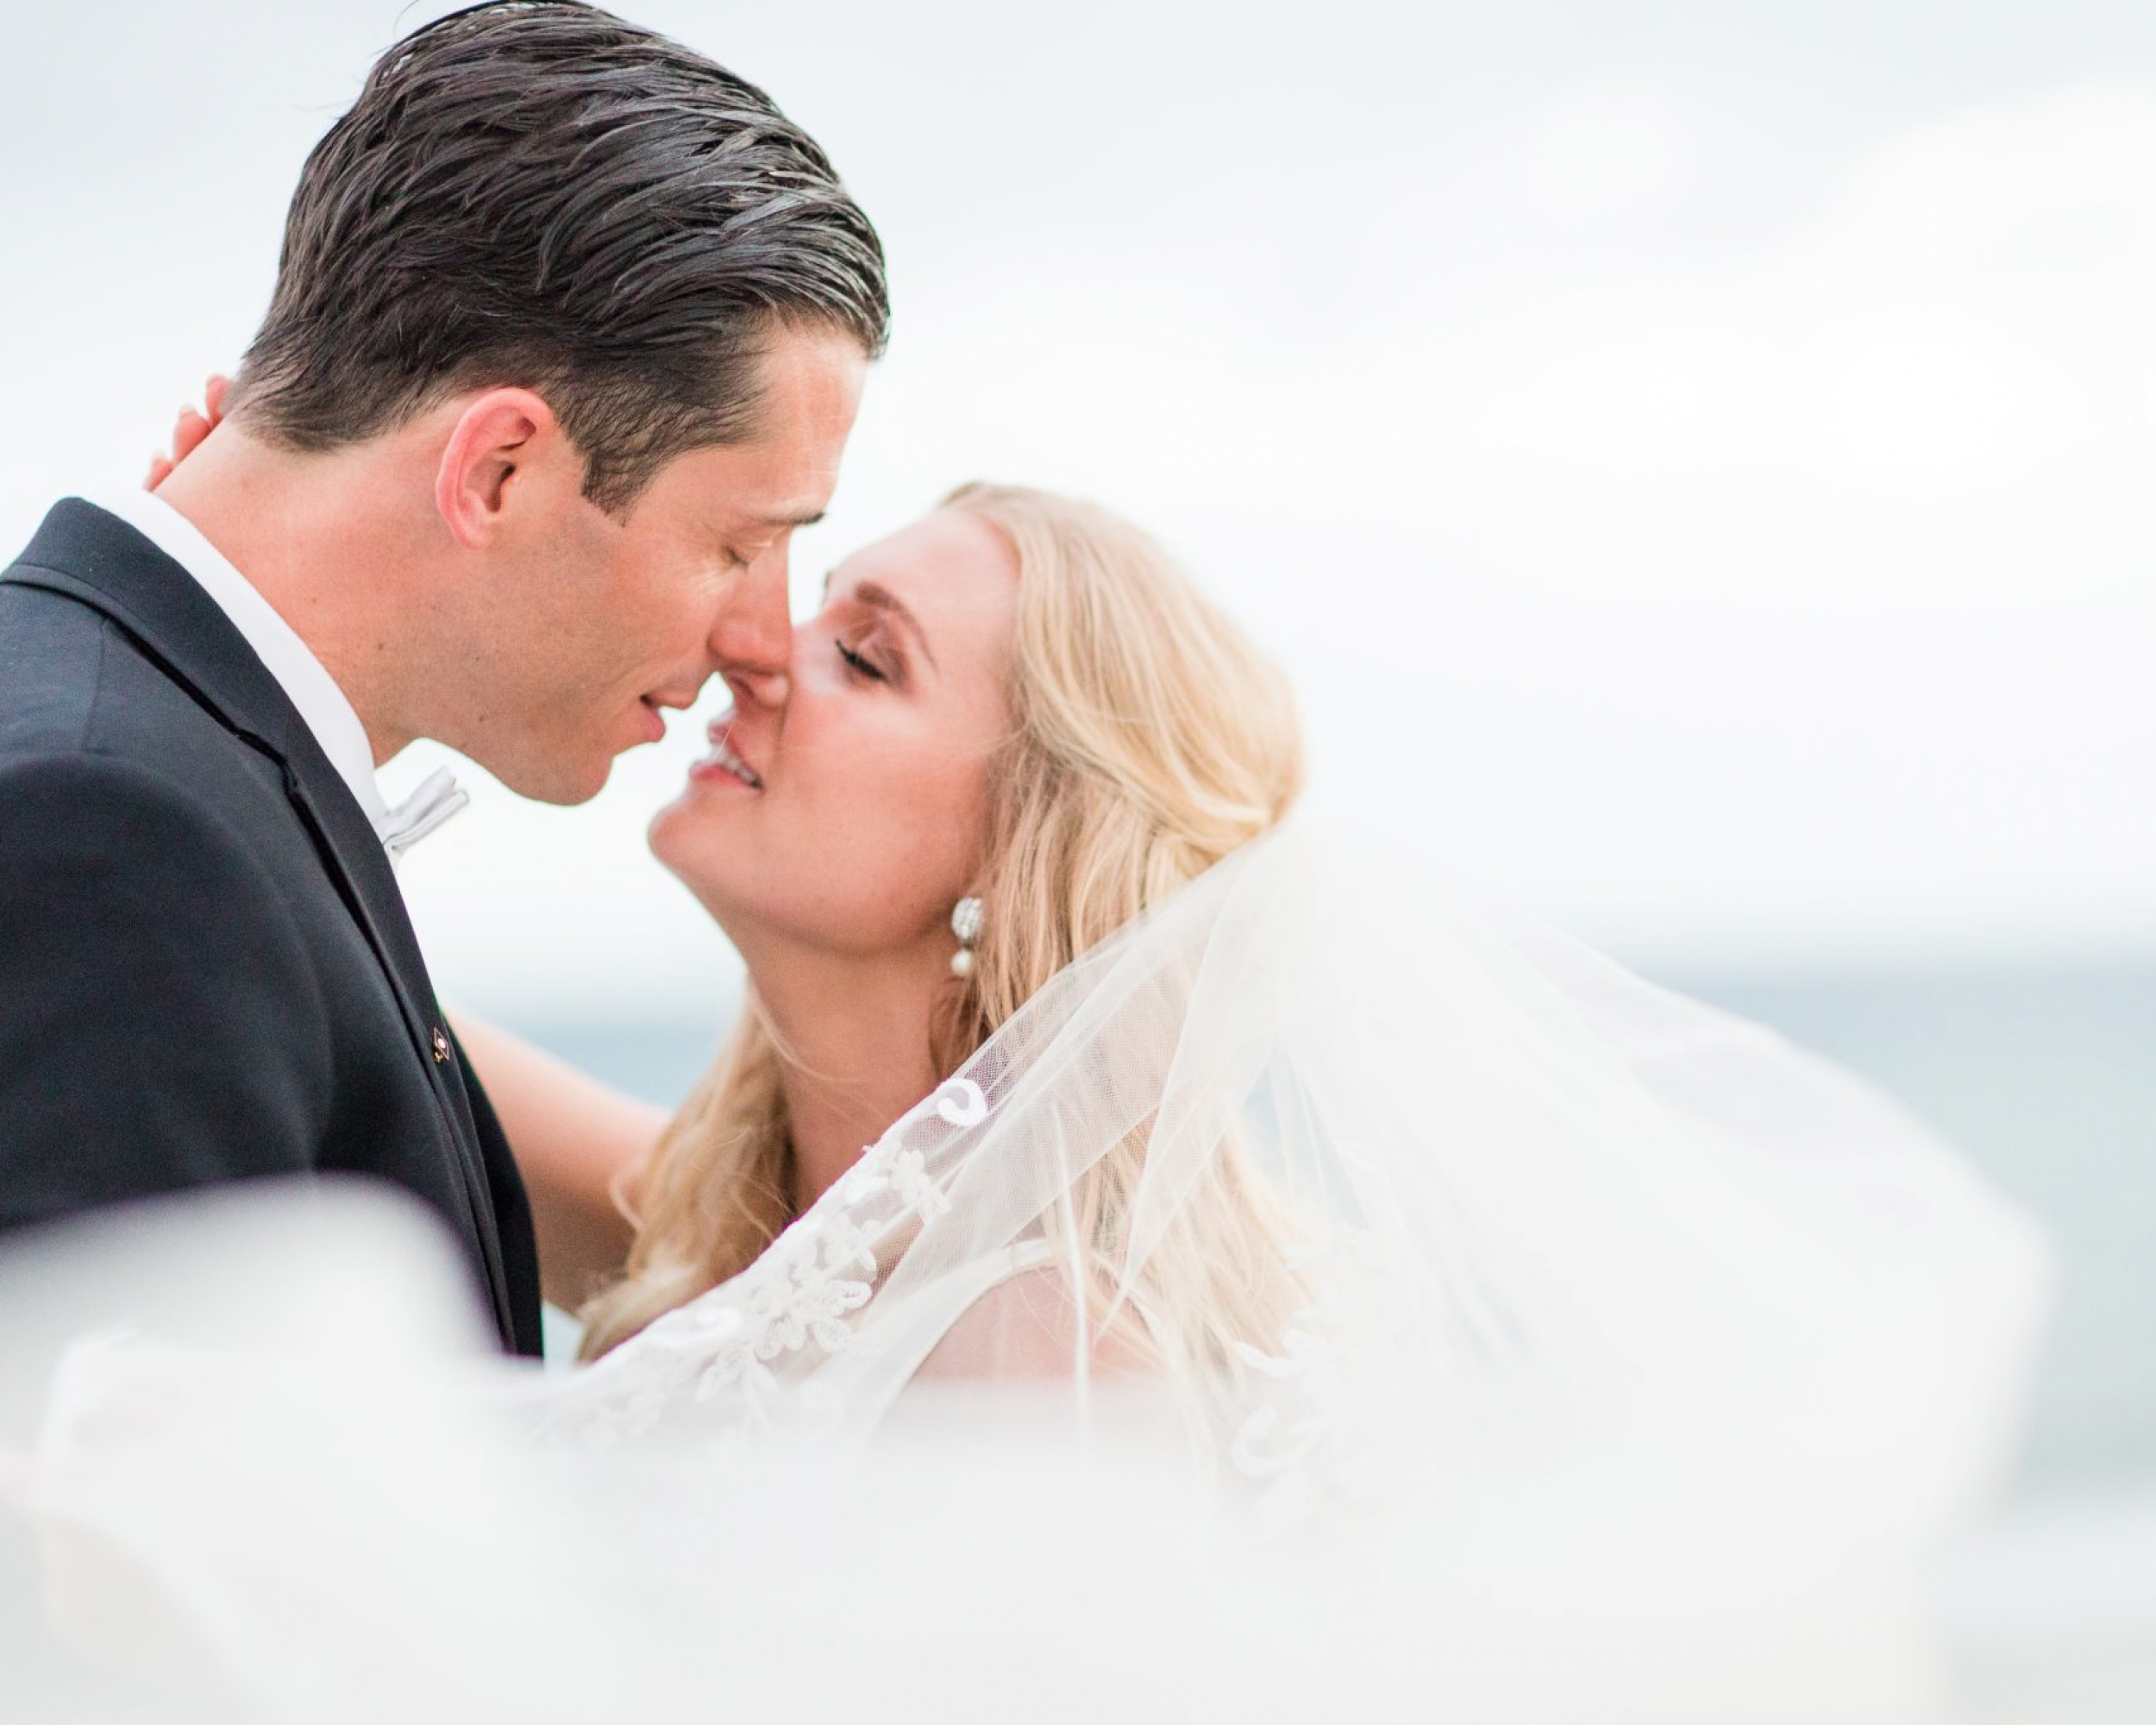 Seaside-Florida-Beach-Wedding-Catherine-Brian-Bride-Groom-118